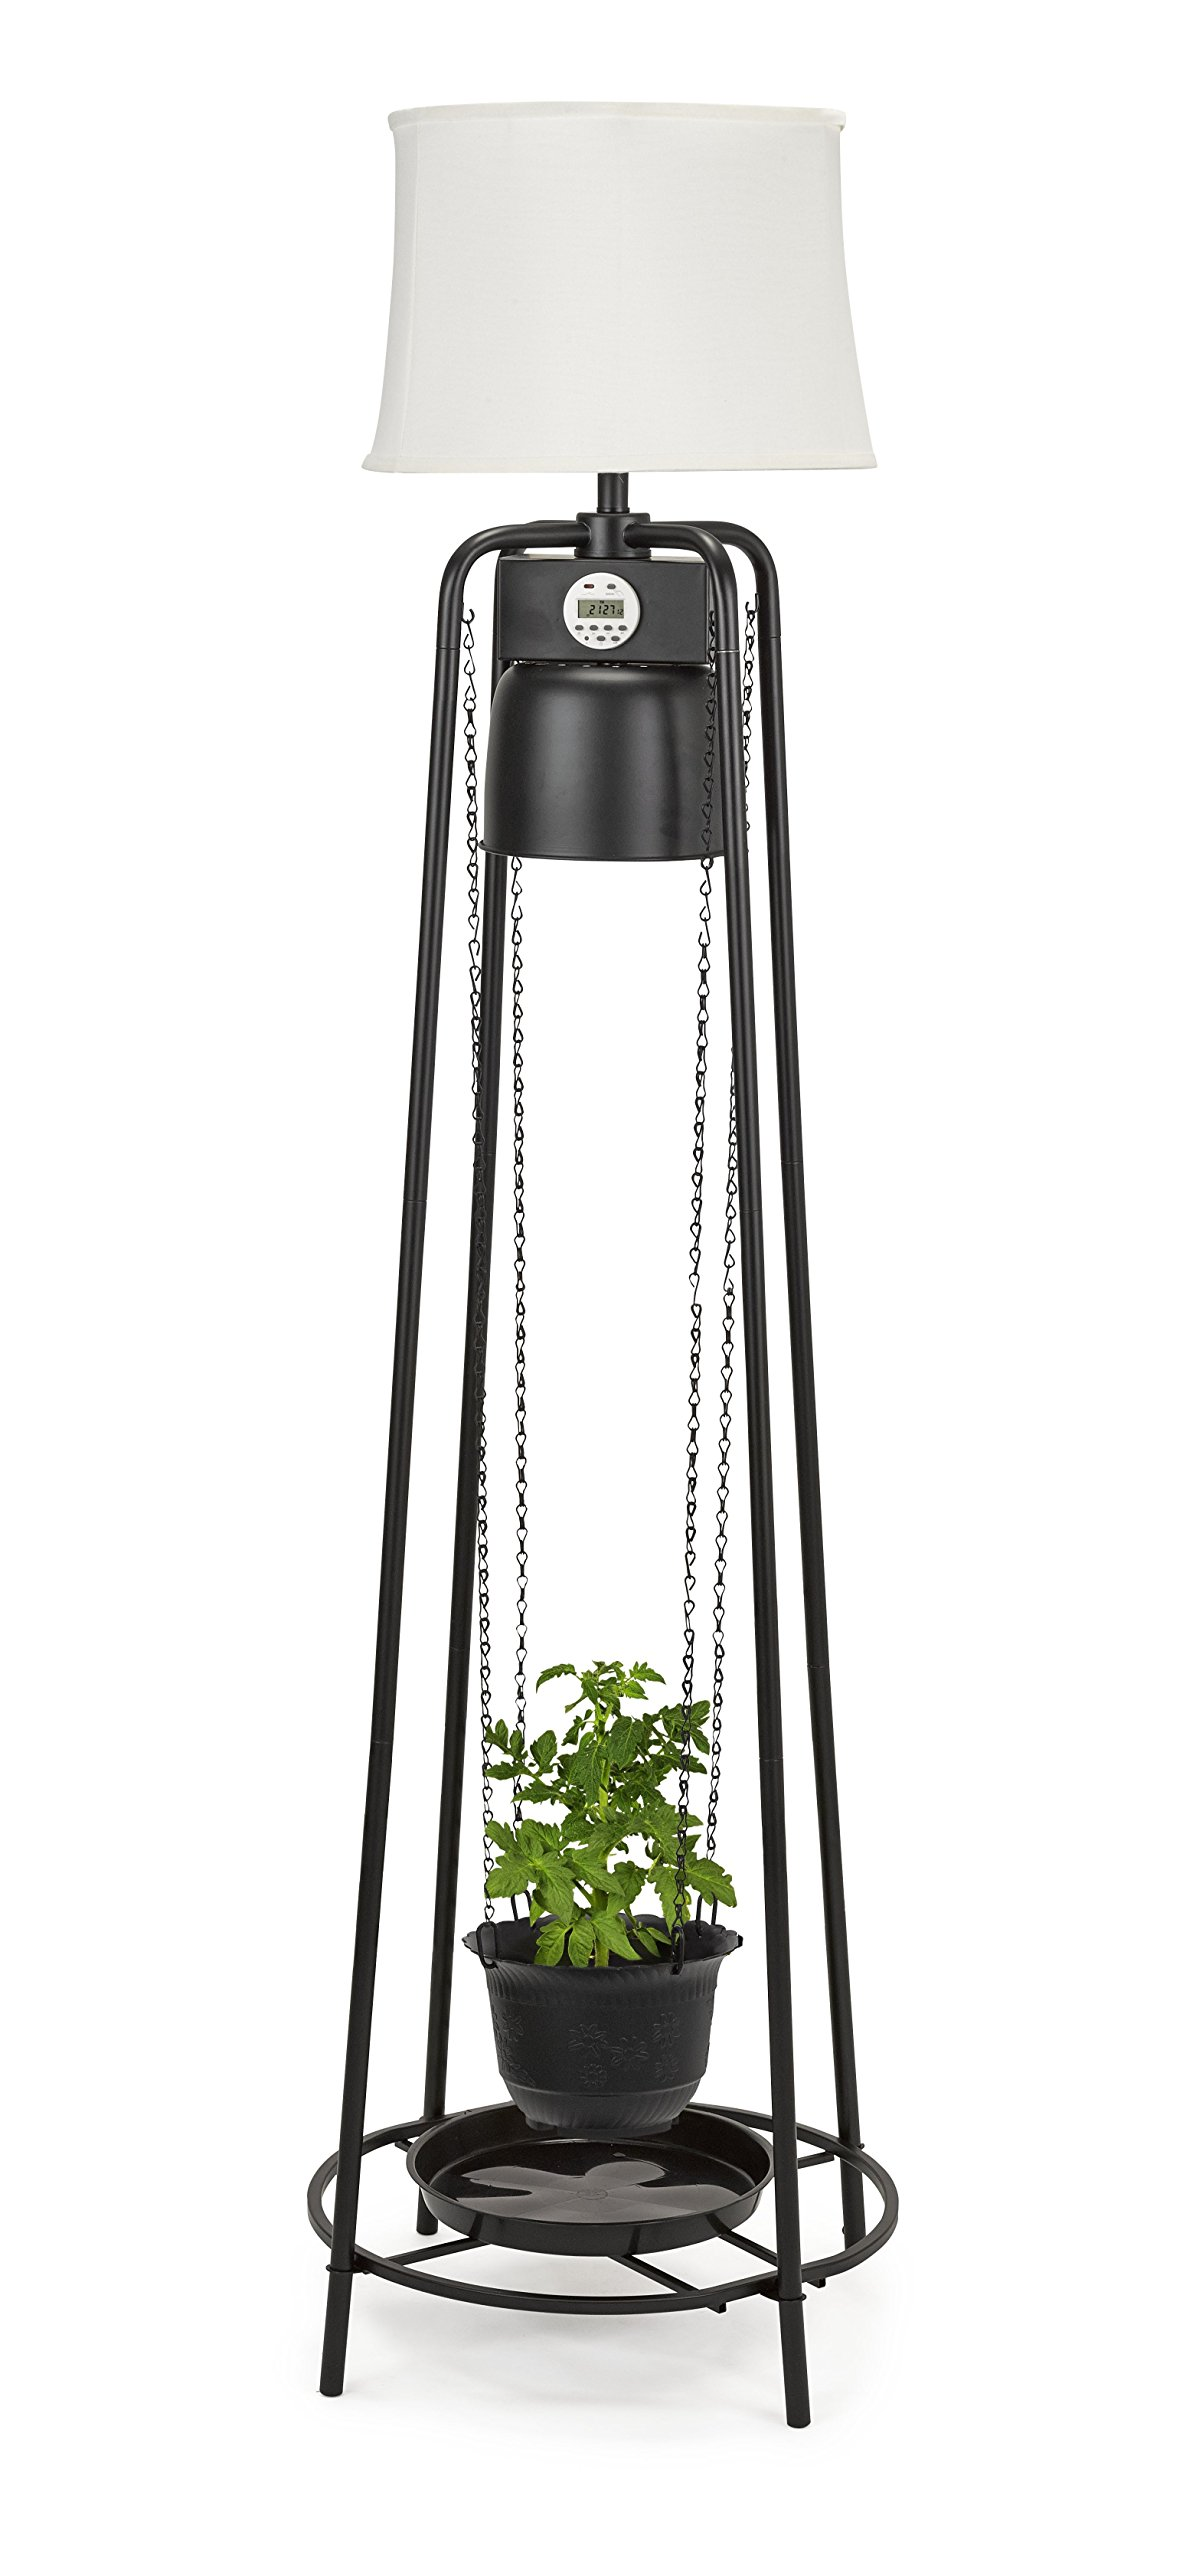 Catalina Lighting Glo Gro 45-Watt LED Grow Light, Étagère Floor Lamp with Adjustable Plant Housing and Integrated Timer, Black, 20745-000 by Catalina Lighting (Image #7)